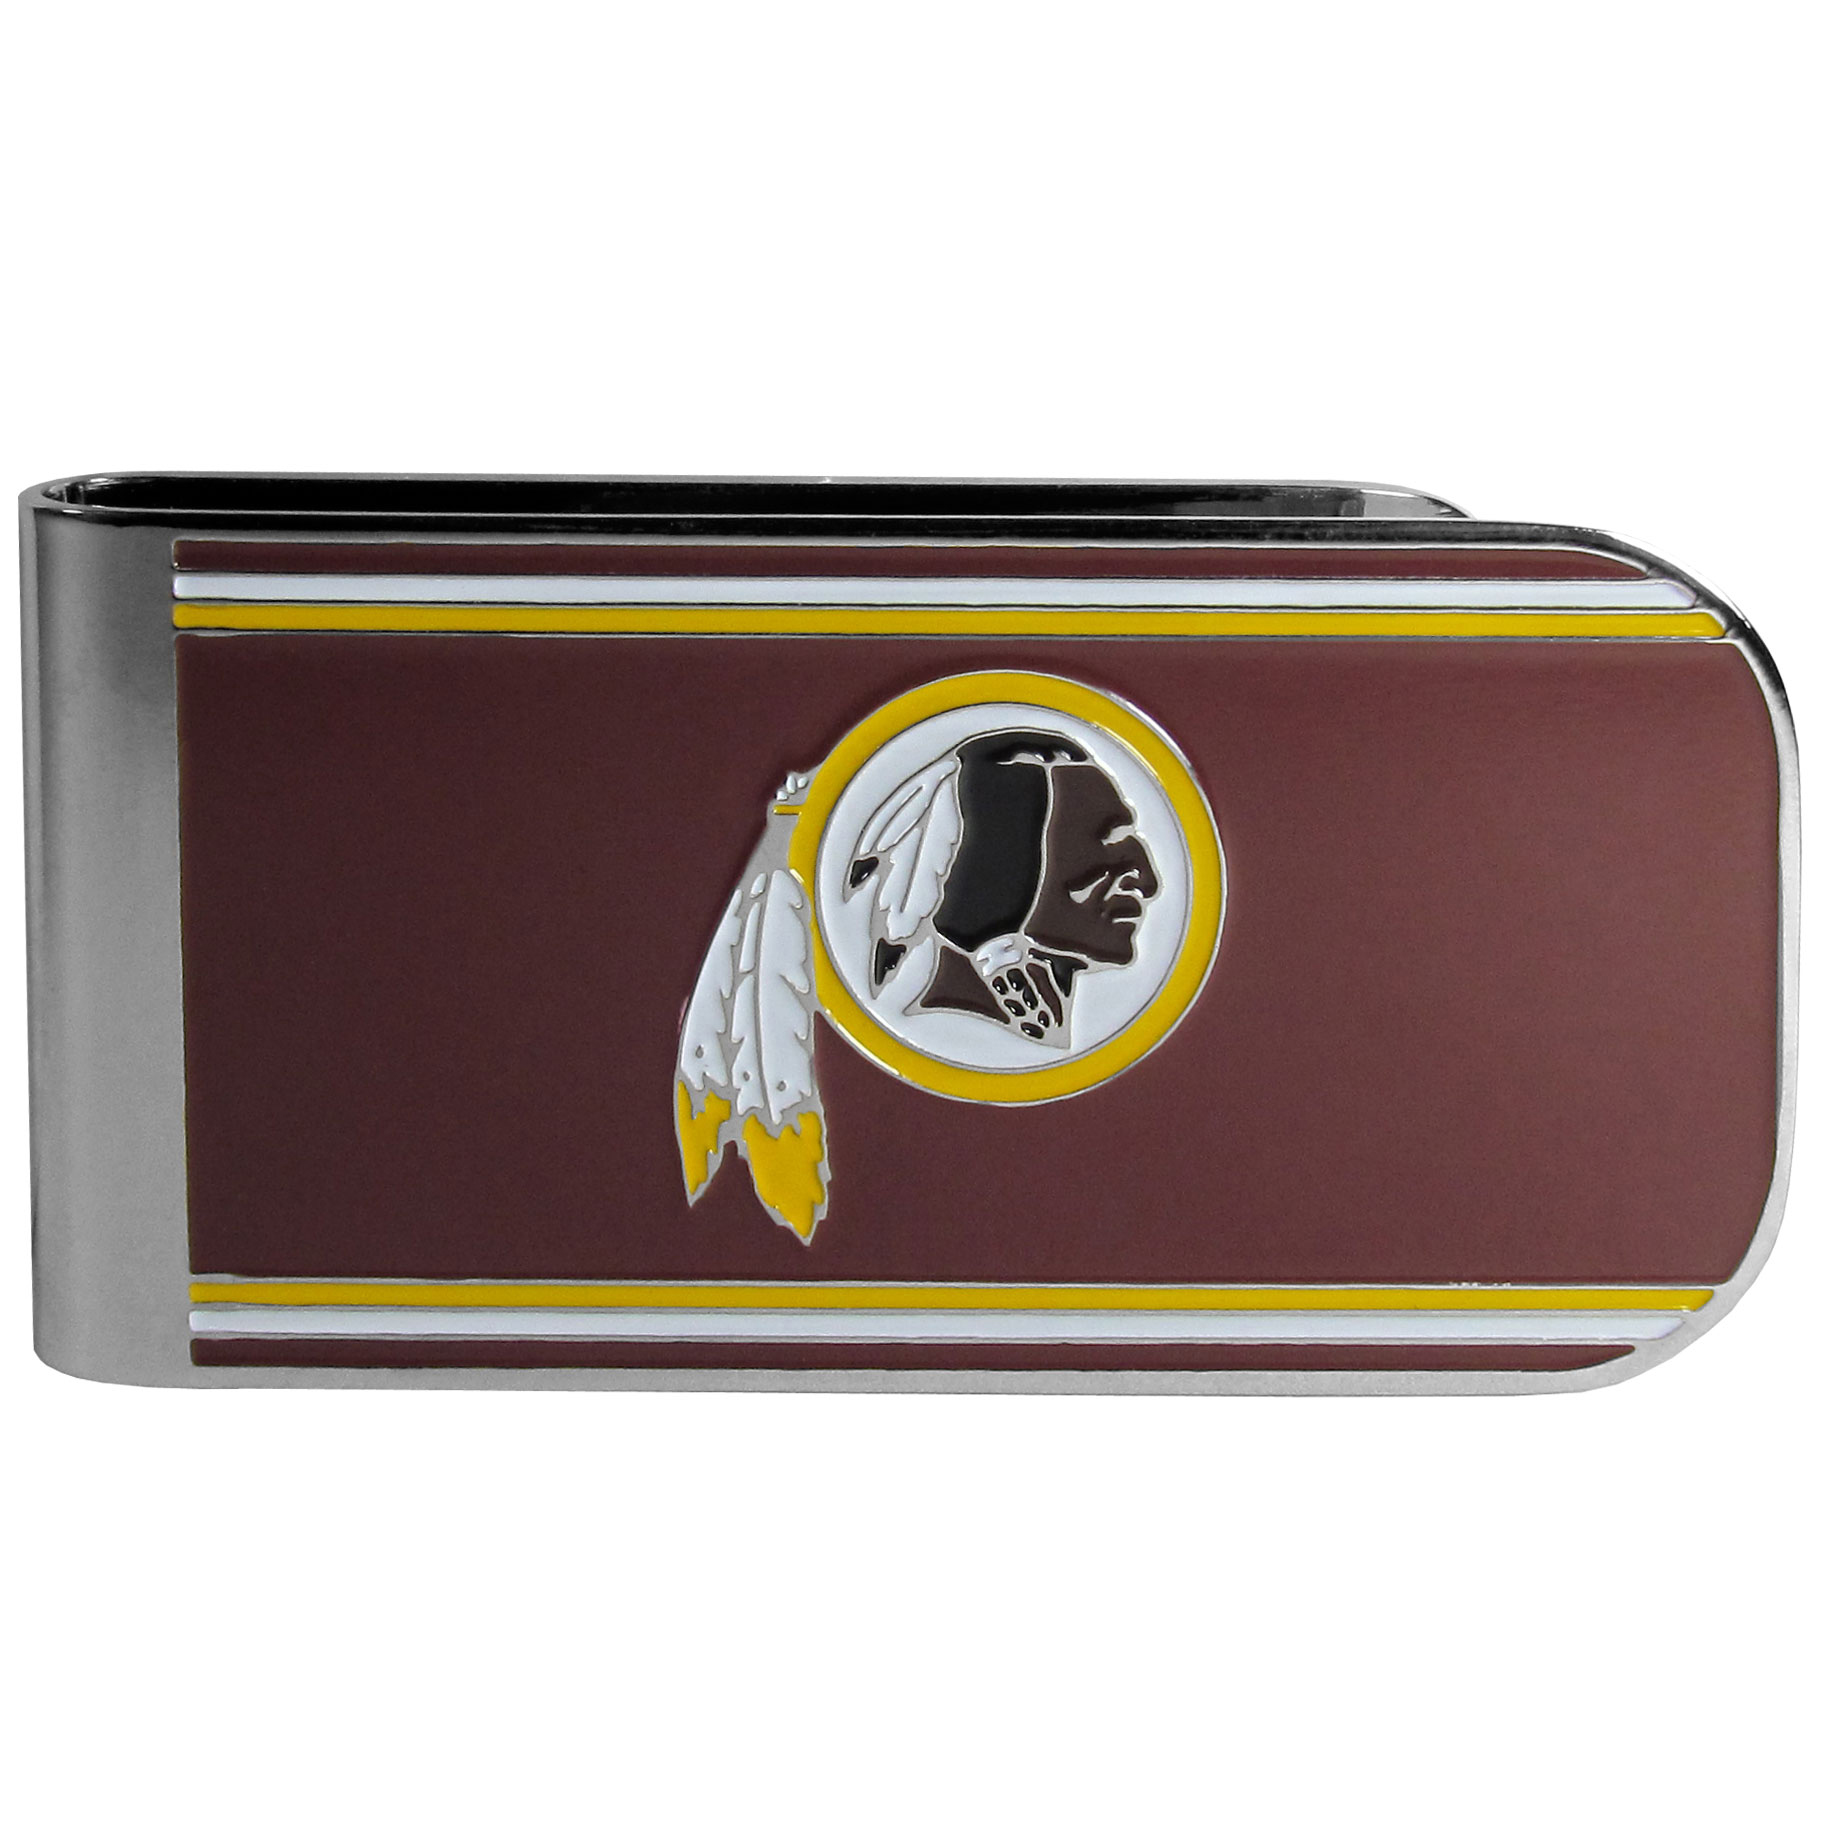 Washington Redskins MVP Money Clip - Our MVP money clip is made of high quality steel with a chrome overlay and enameled team colors and logo. The exceptional craftmanship on this piece makes it a men's fashion accessory that any fan would be proud to own. The cast detail in the Washington Redskins logo is perfectly detailed. The clip features an inner spring to hold your cash and cards securely in place.